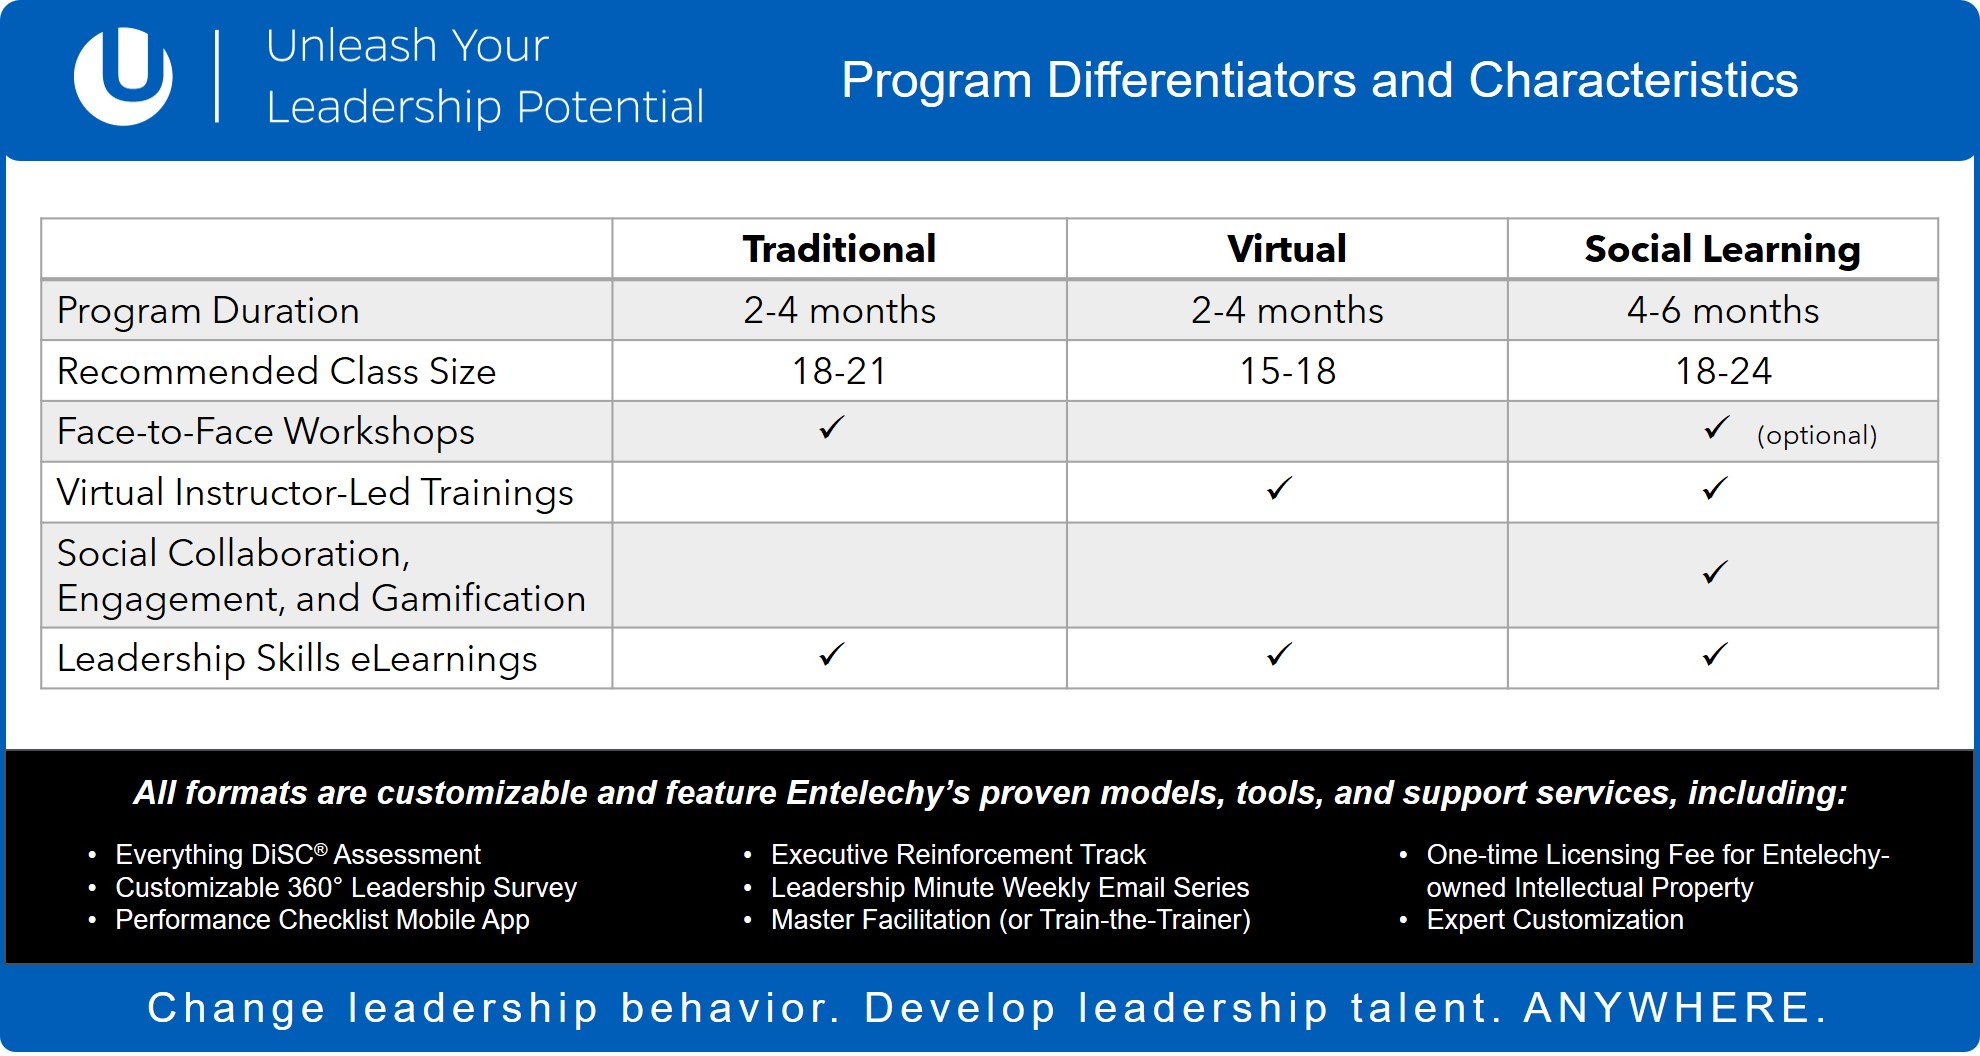 UYLP_Overview_Graphic_20200514a